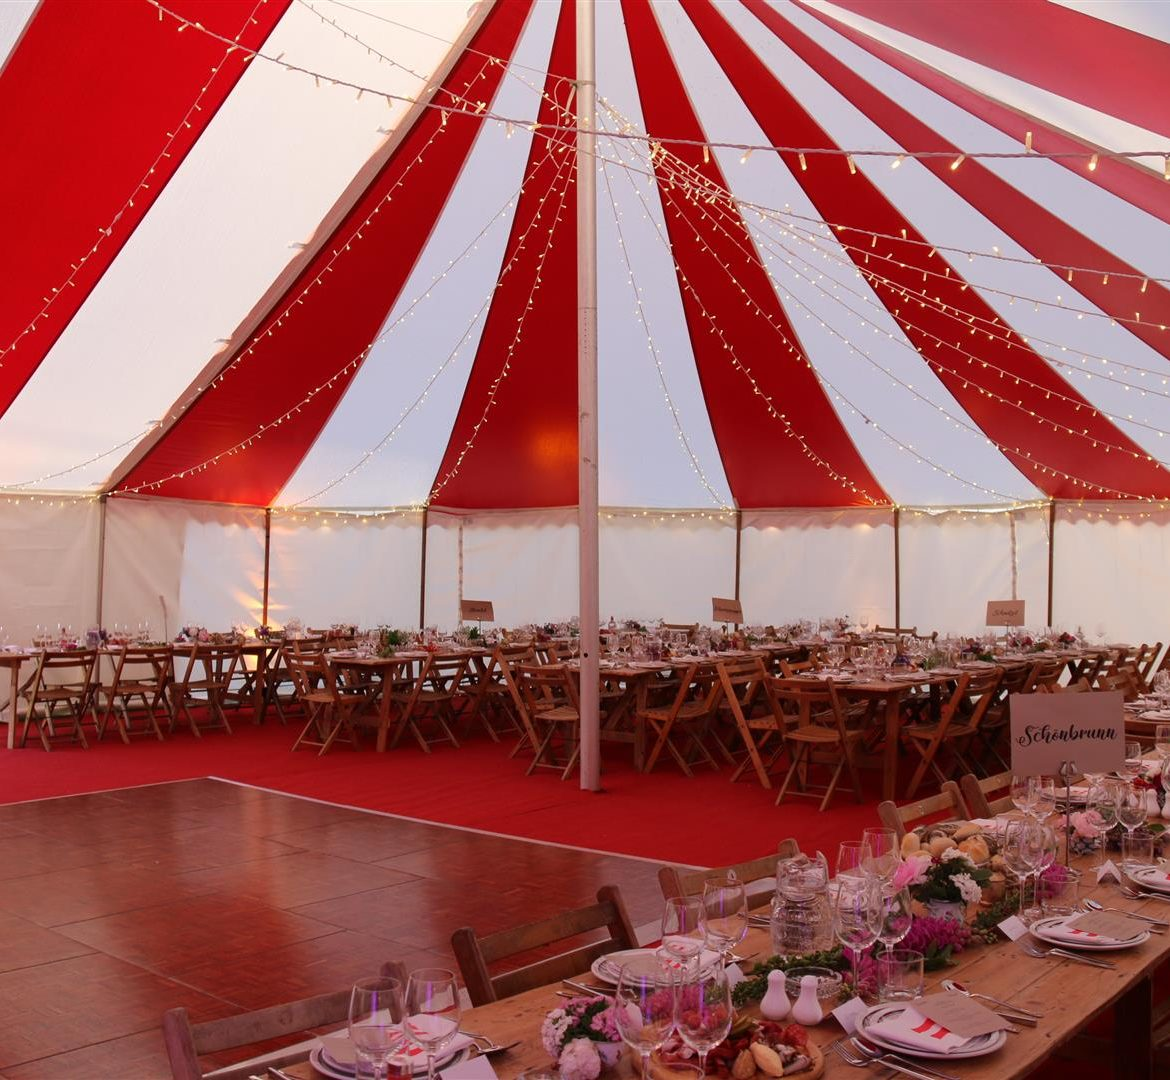 40x60ft Circus tent, white walls